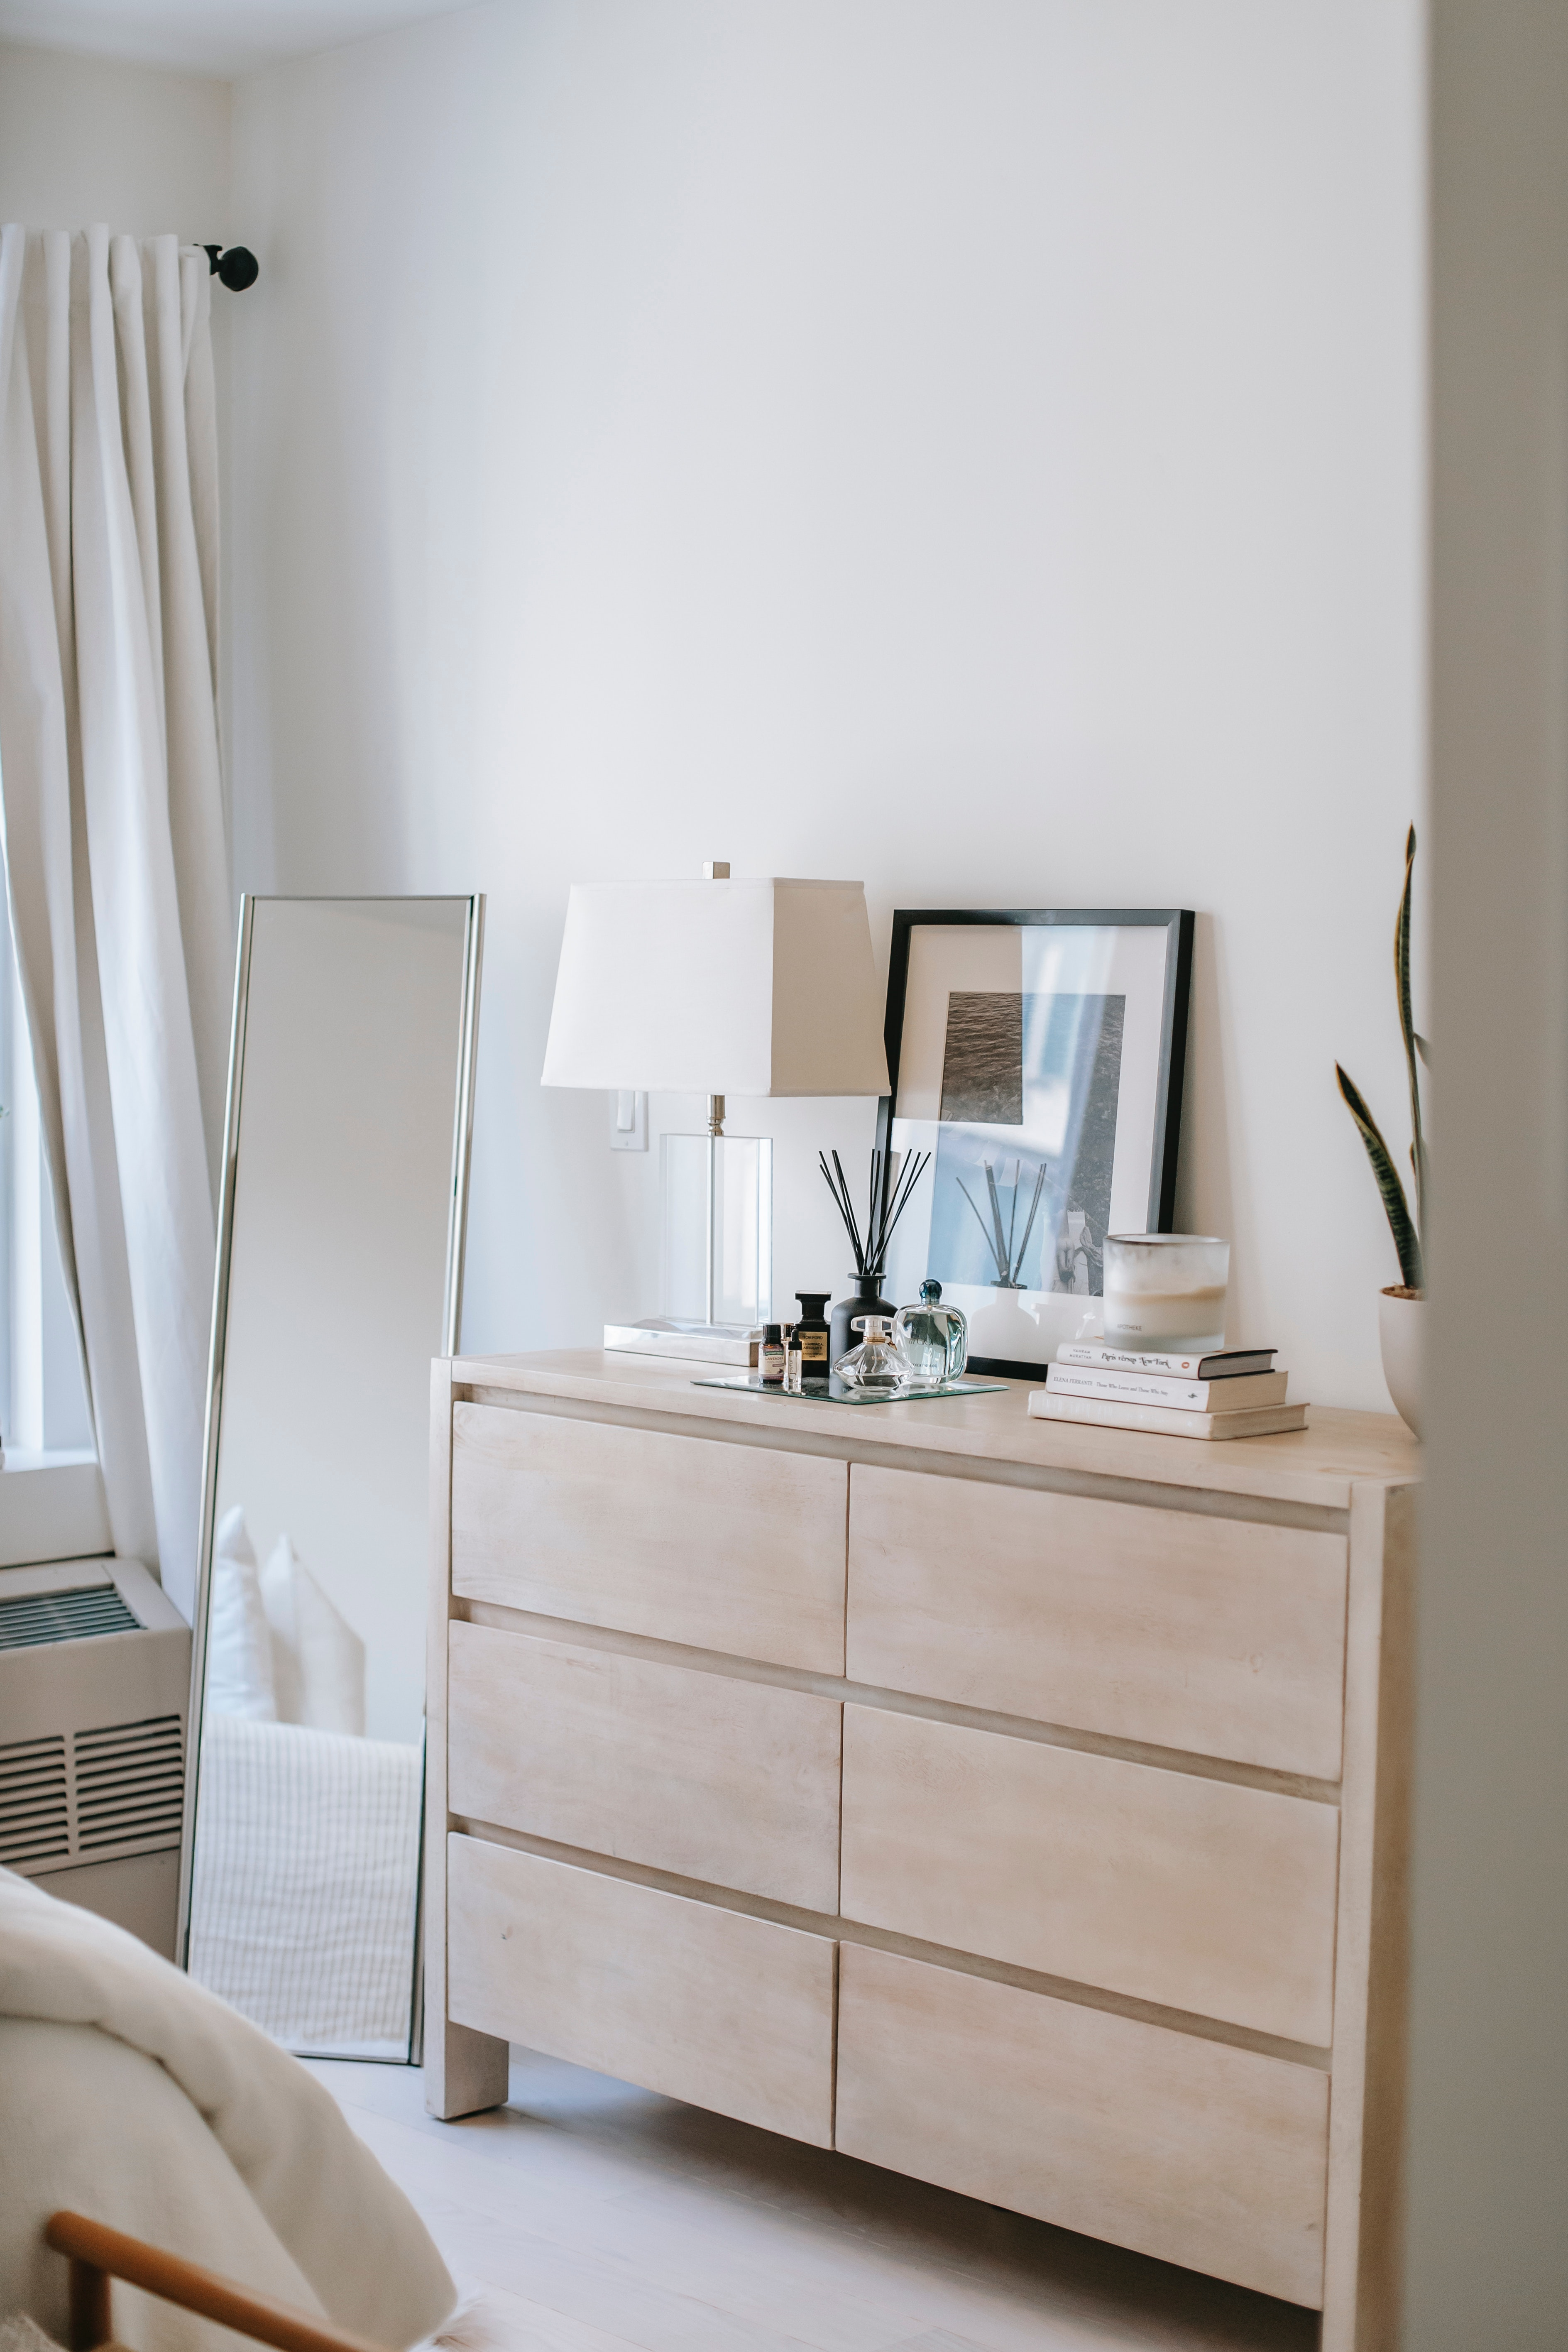 Bedroom Interior With Commode And Mirror In House Free Stock Photo